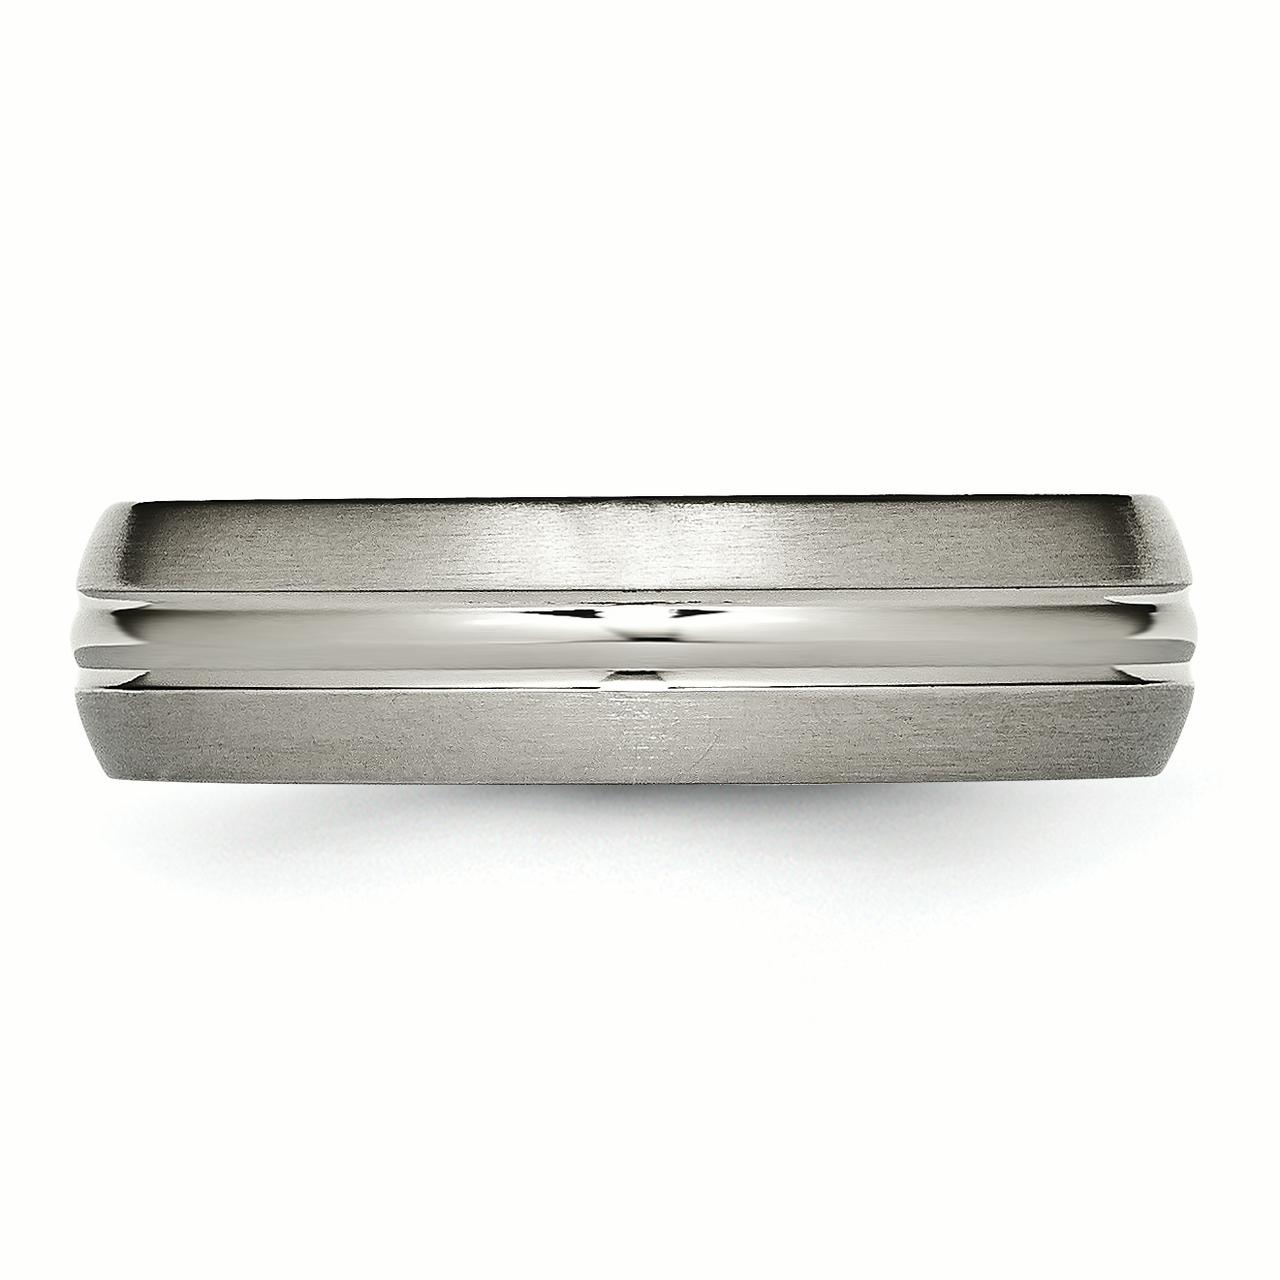 Titanium Grooved 6mm Brushed and Polished Band Size 7.5 - image 1 de 3